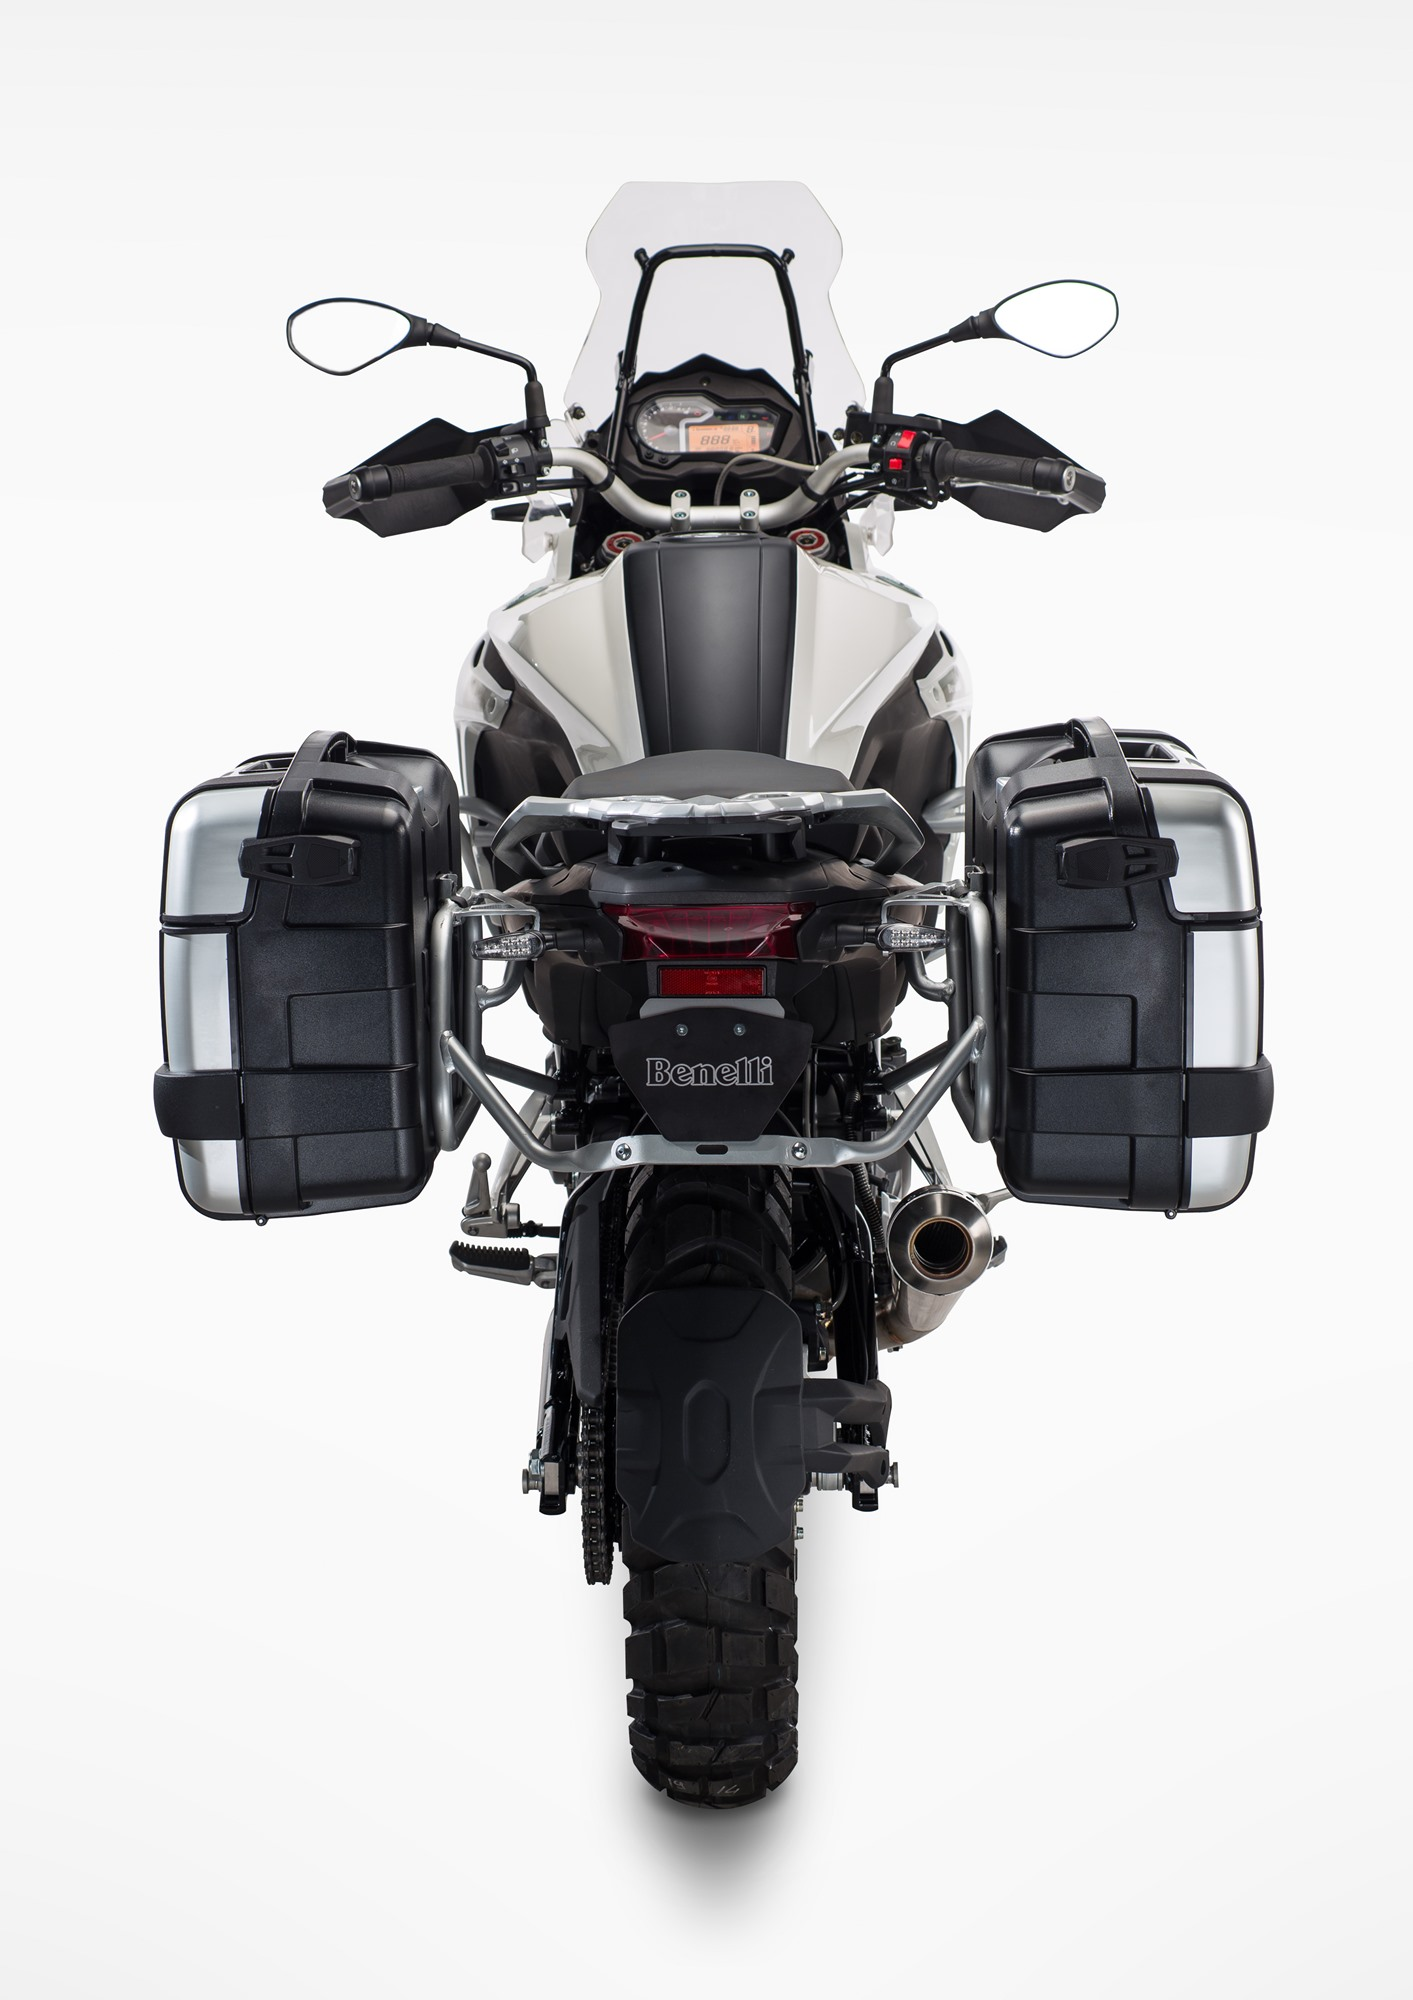 2016 Benelli TRK 502 unveiled at EICMA 2015